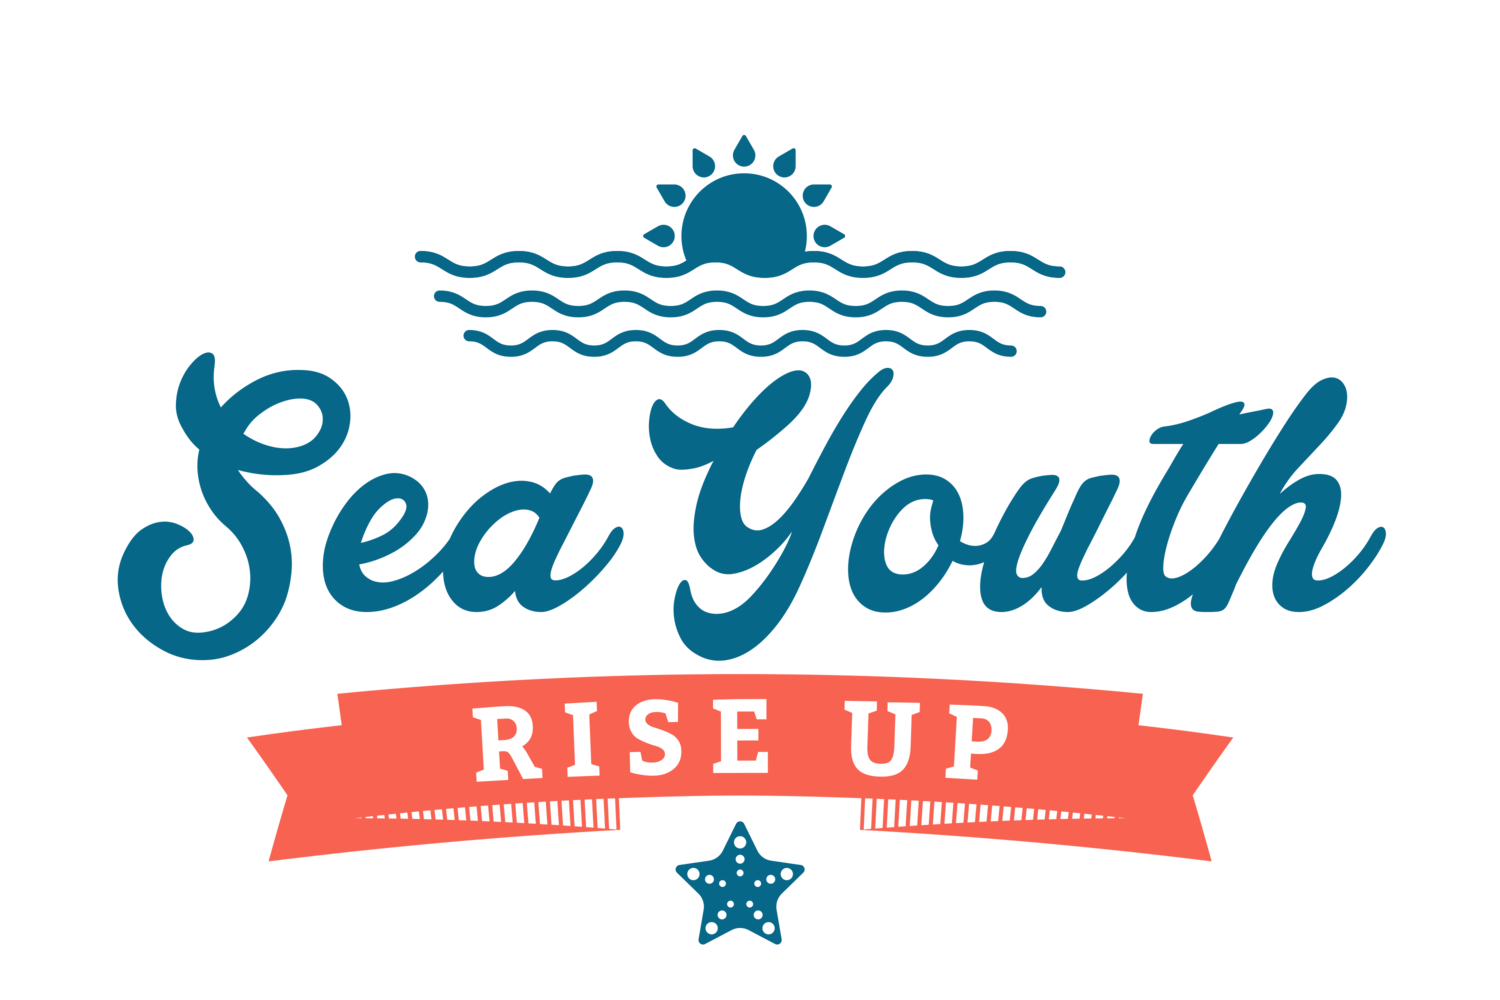 Sea Youth Rise Up